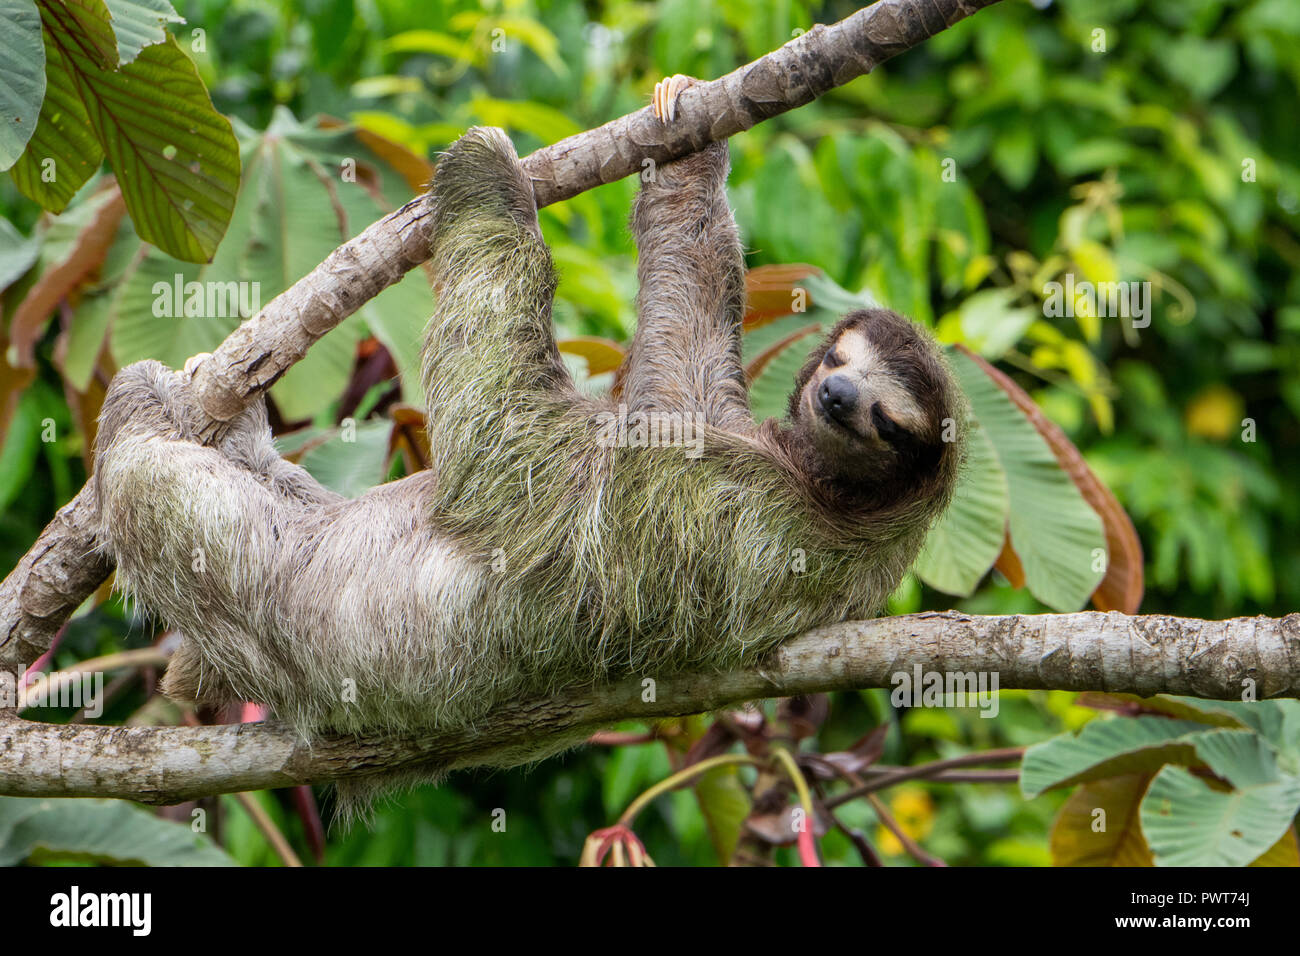 Central America, Costa Rica. Wild brown-throated sloth (Bradypus variegatus) in a tree. Type of three-toed sloth found in the neotropical climates. Stock Photo